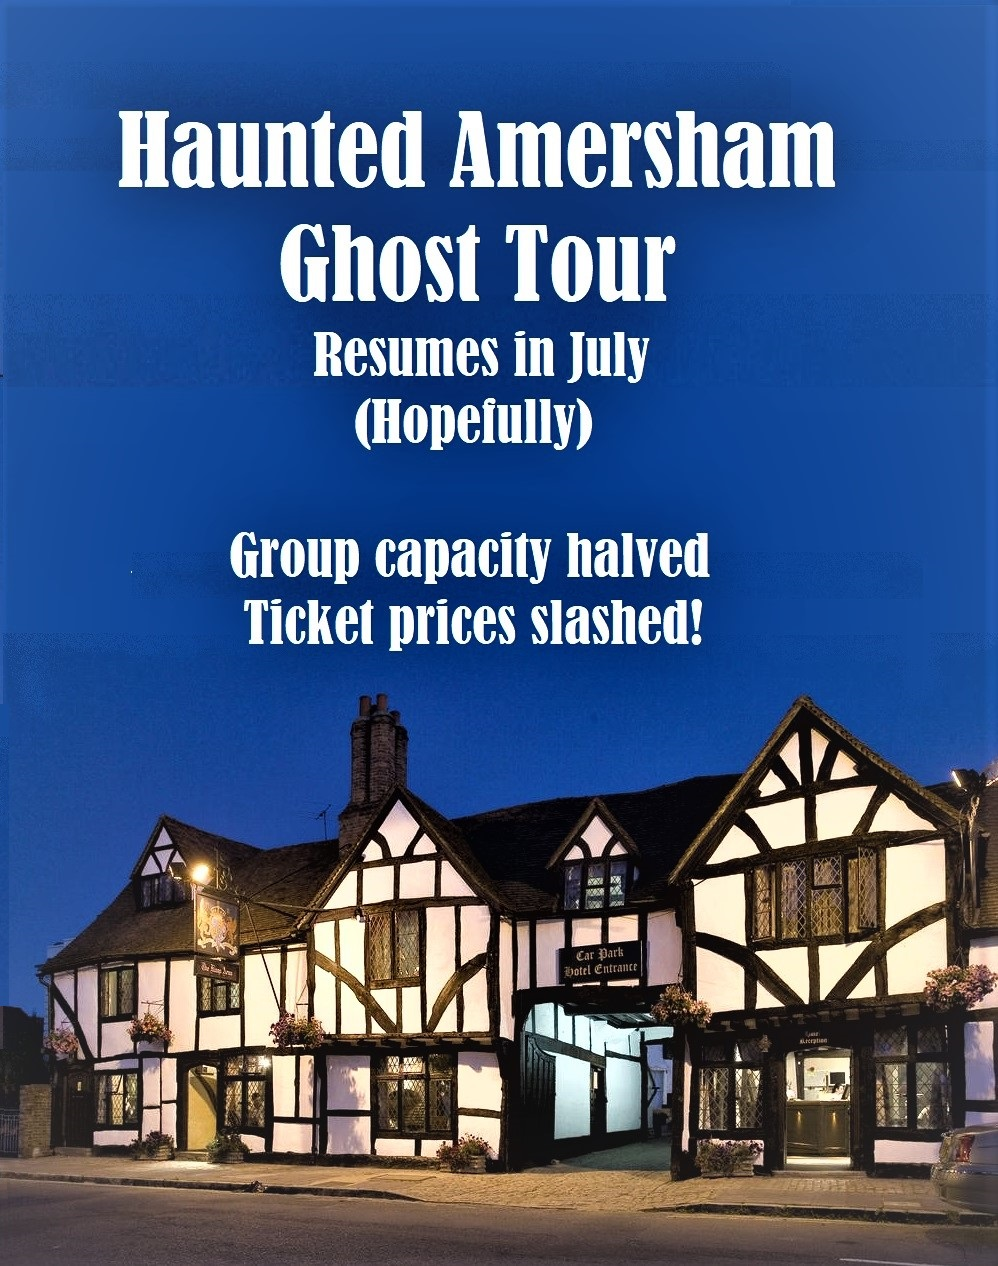 Haunted Amersham Ghost Tour